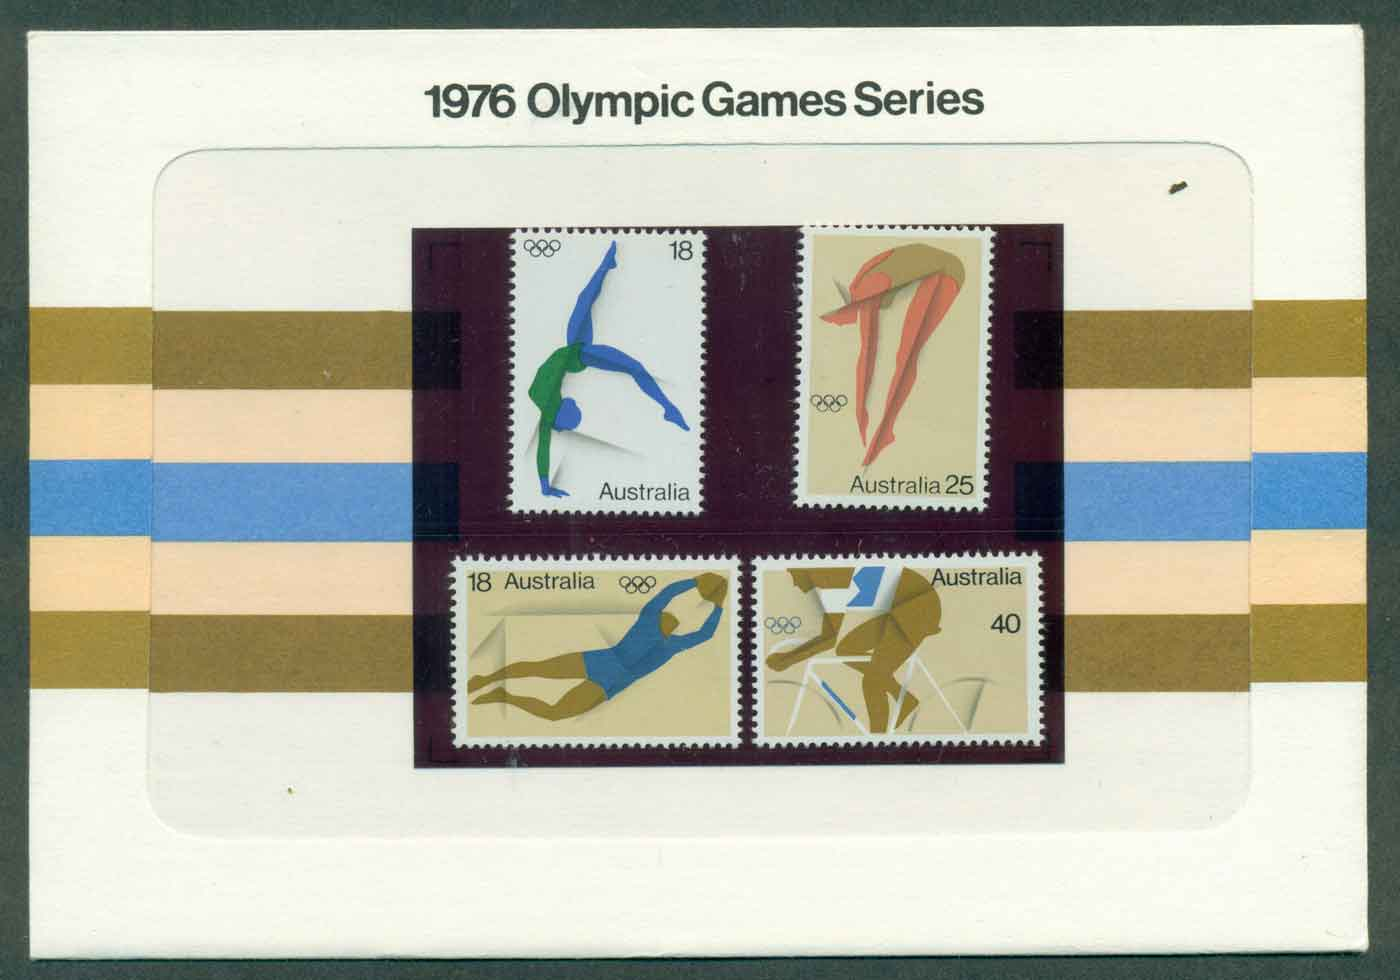 Australia 1976 Olympic Games POP lot32154